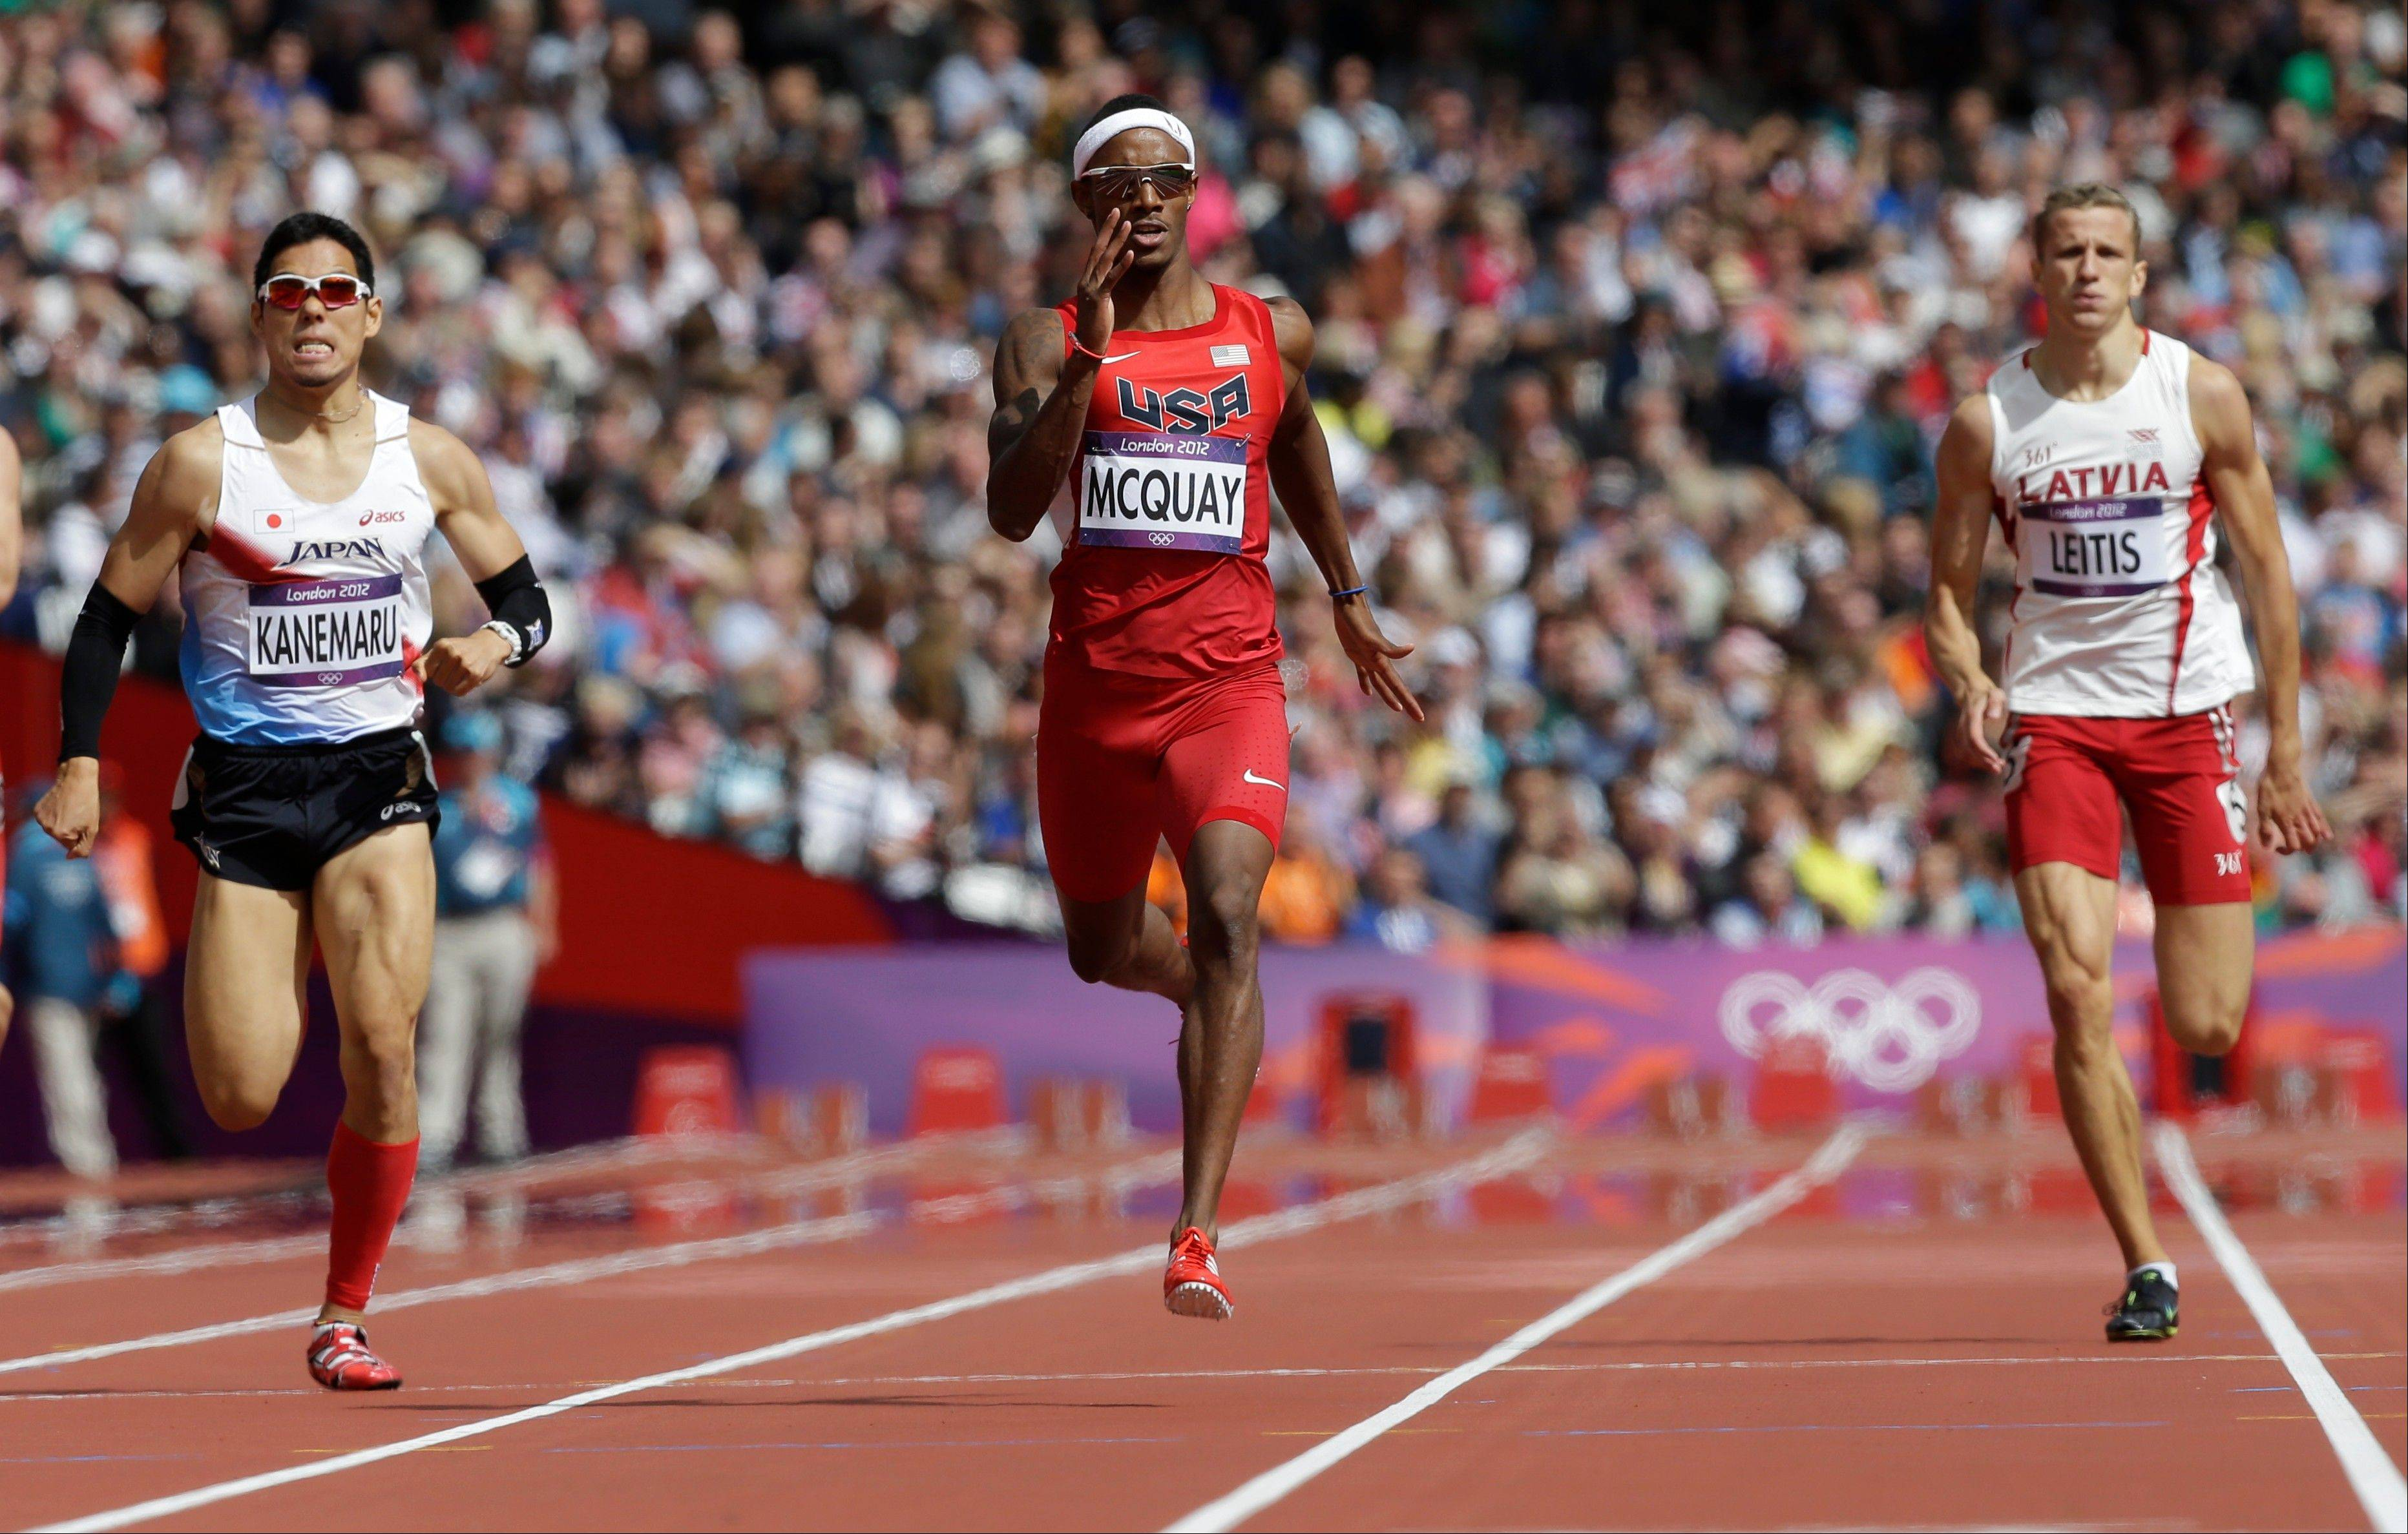 FRom left, Japan's Yuzo Kanemaru, United States' Tony McQuay, Latvia's Janis Leitis compete in a men's 400-meter heat during the athletics in the Olympic Stadium at the 2012 Summer Olympics, London, Saturday, Aug. 4, 2012.